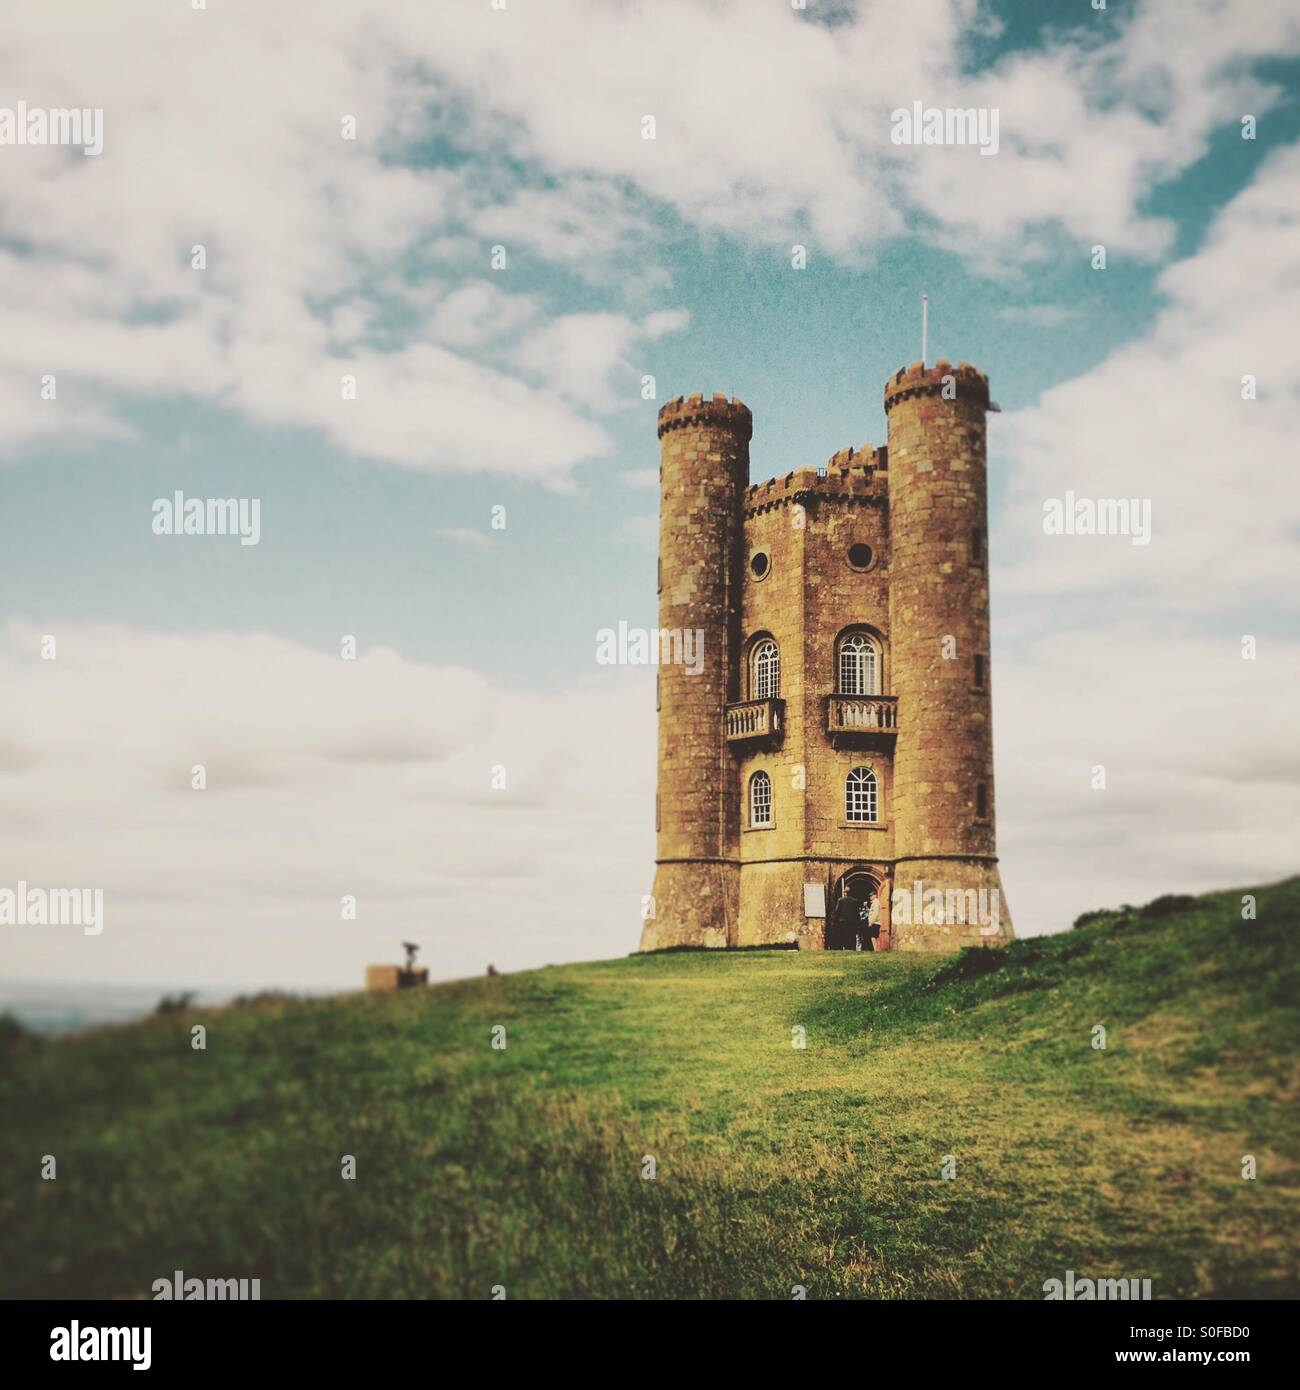 Broadway tower in Worcestershire. - Stock Image